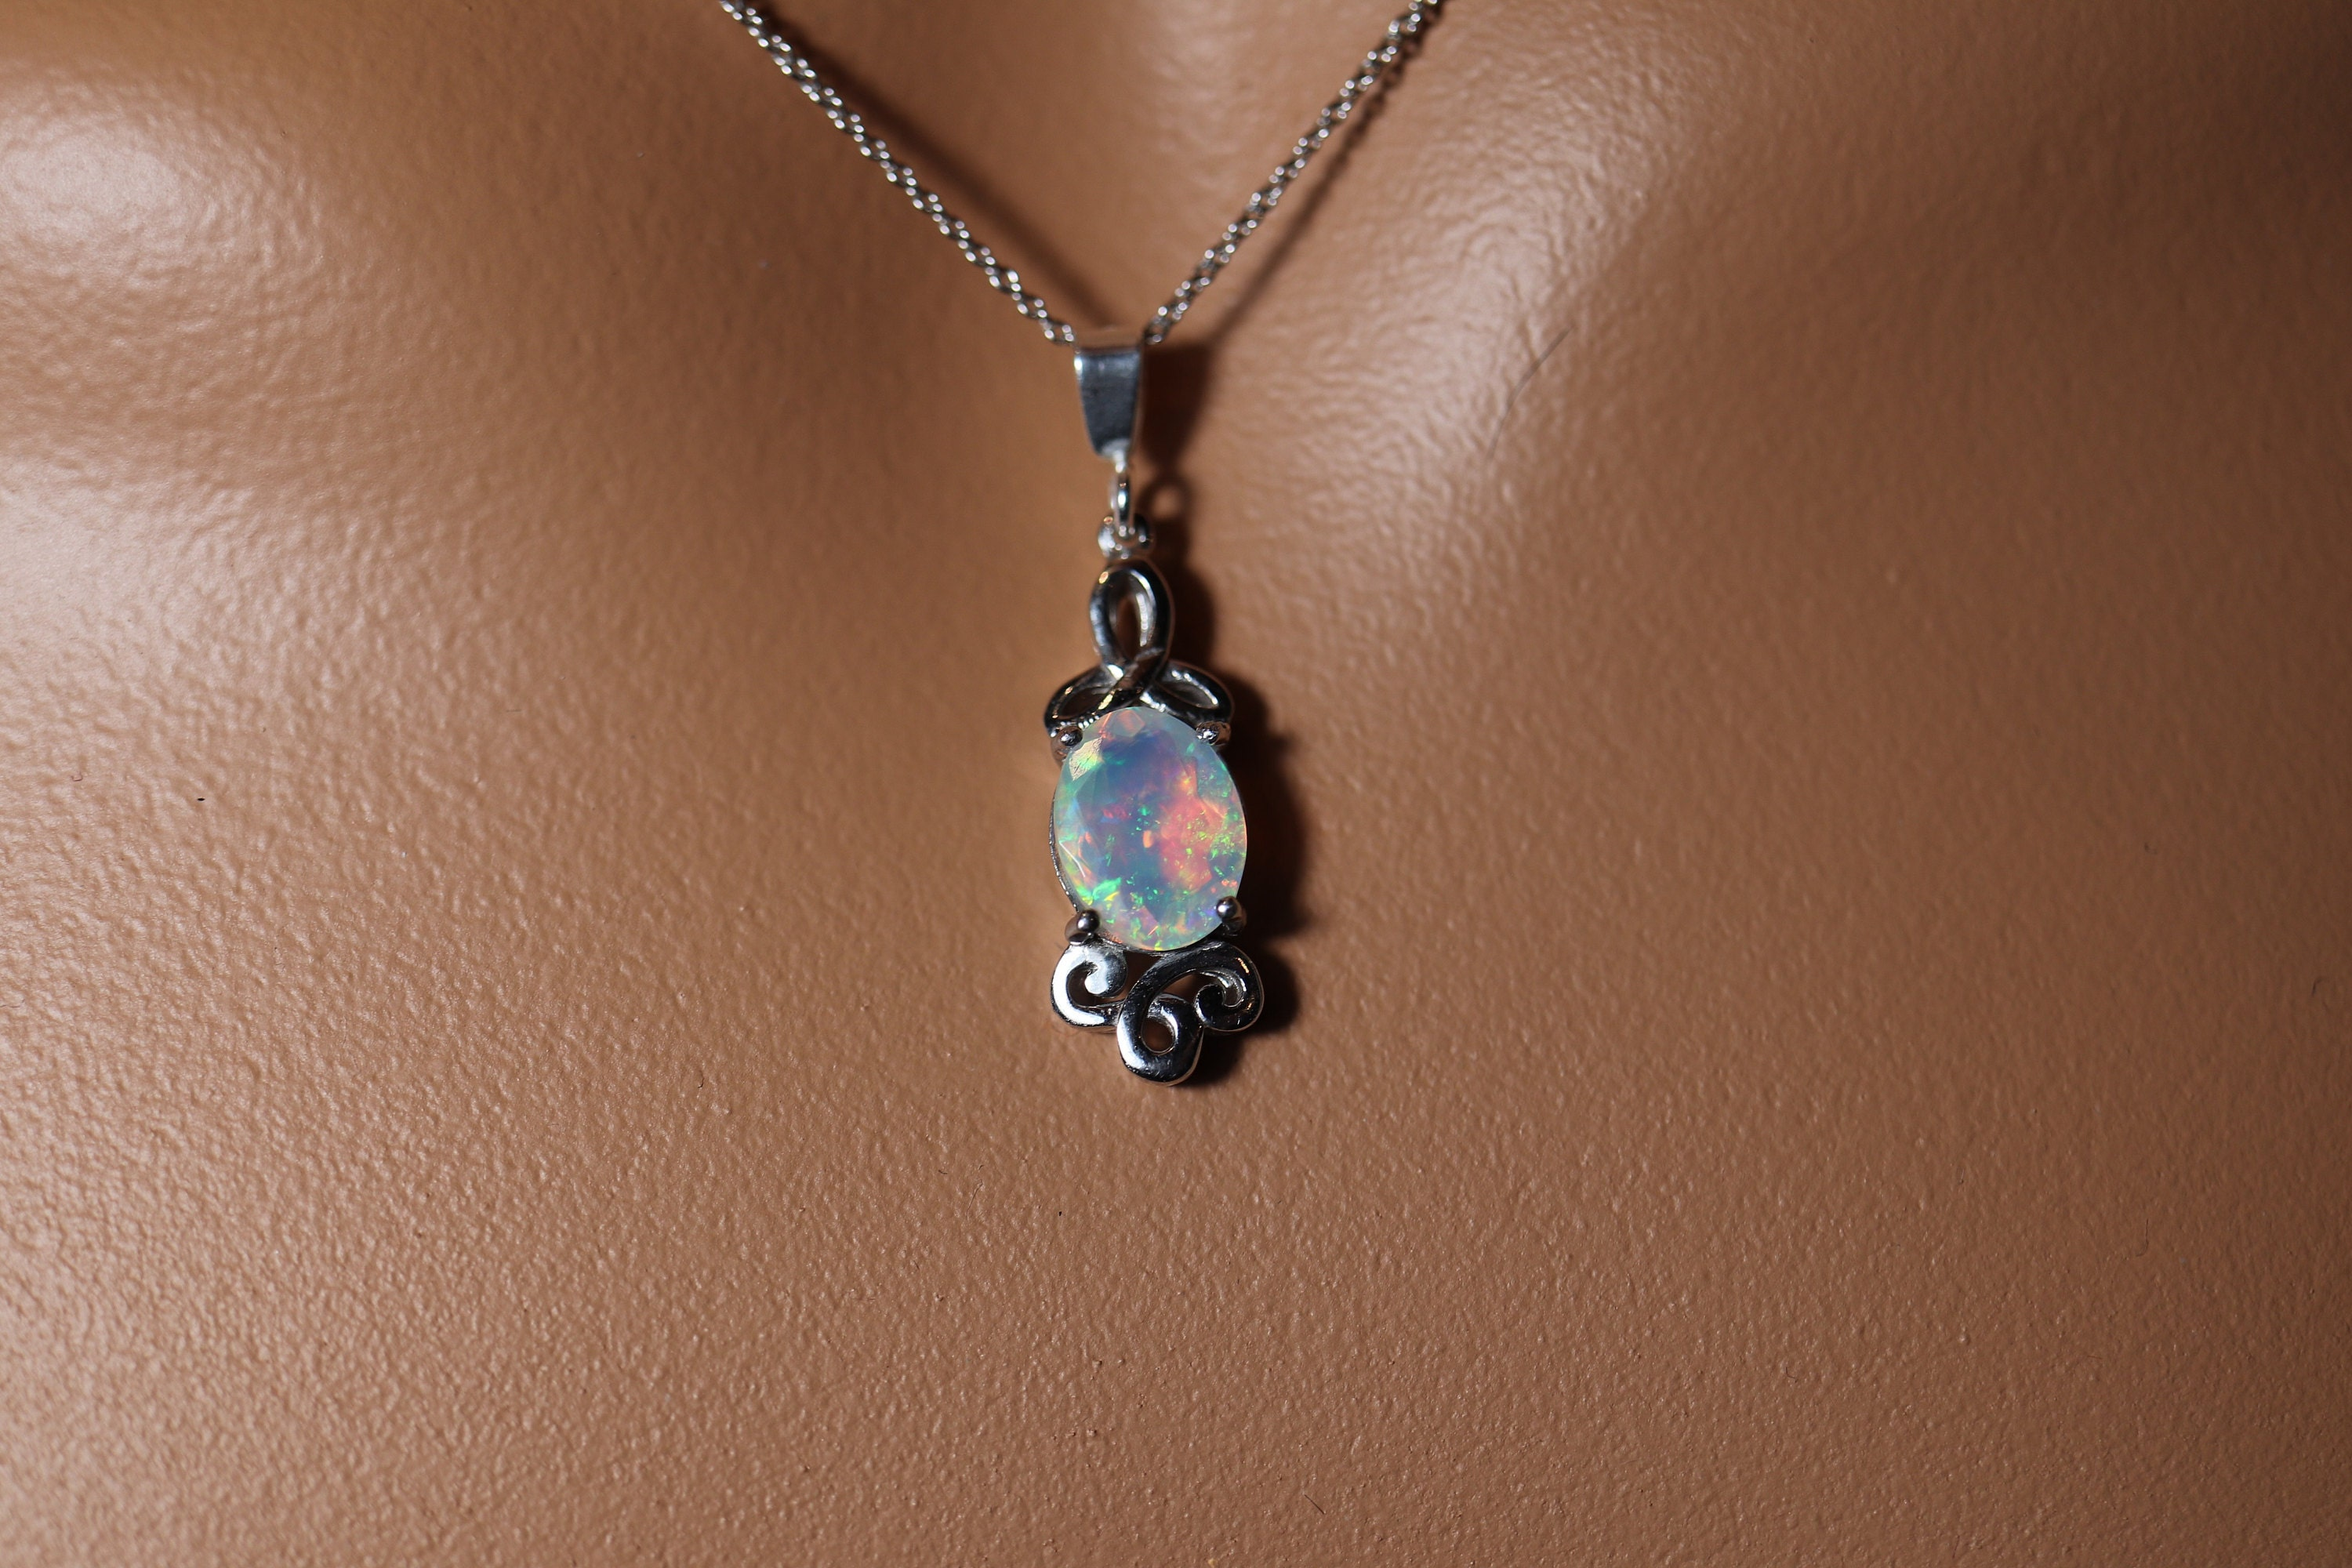 The Celtic inspired antiqued finish sterling silver pendant